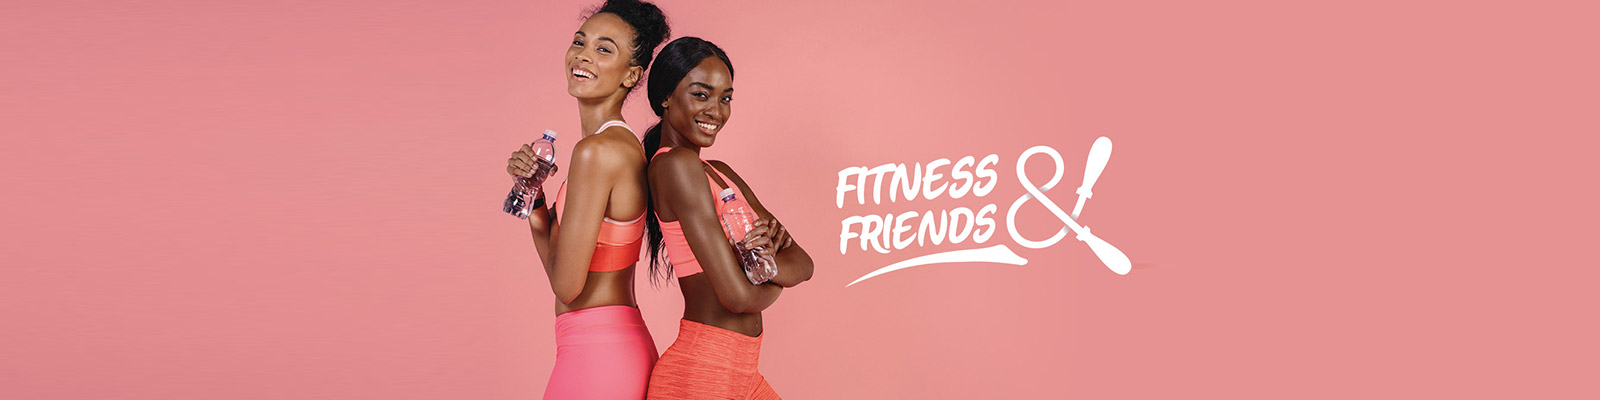 Fitness&Friends